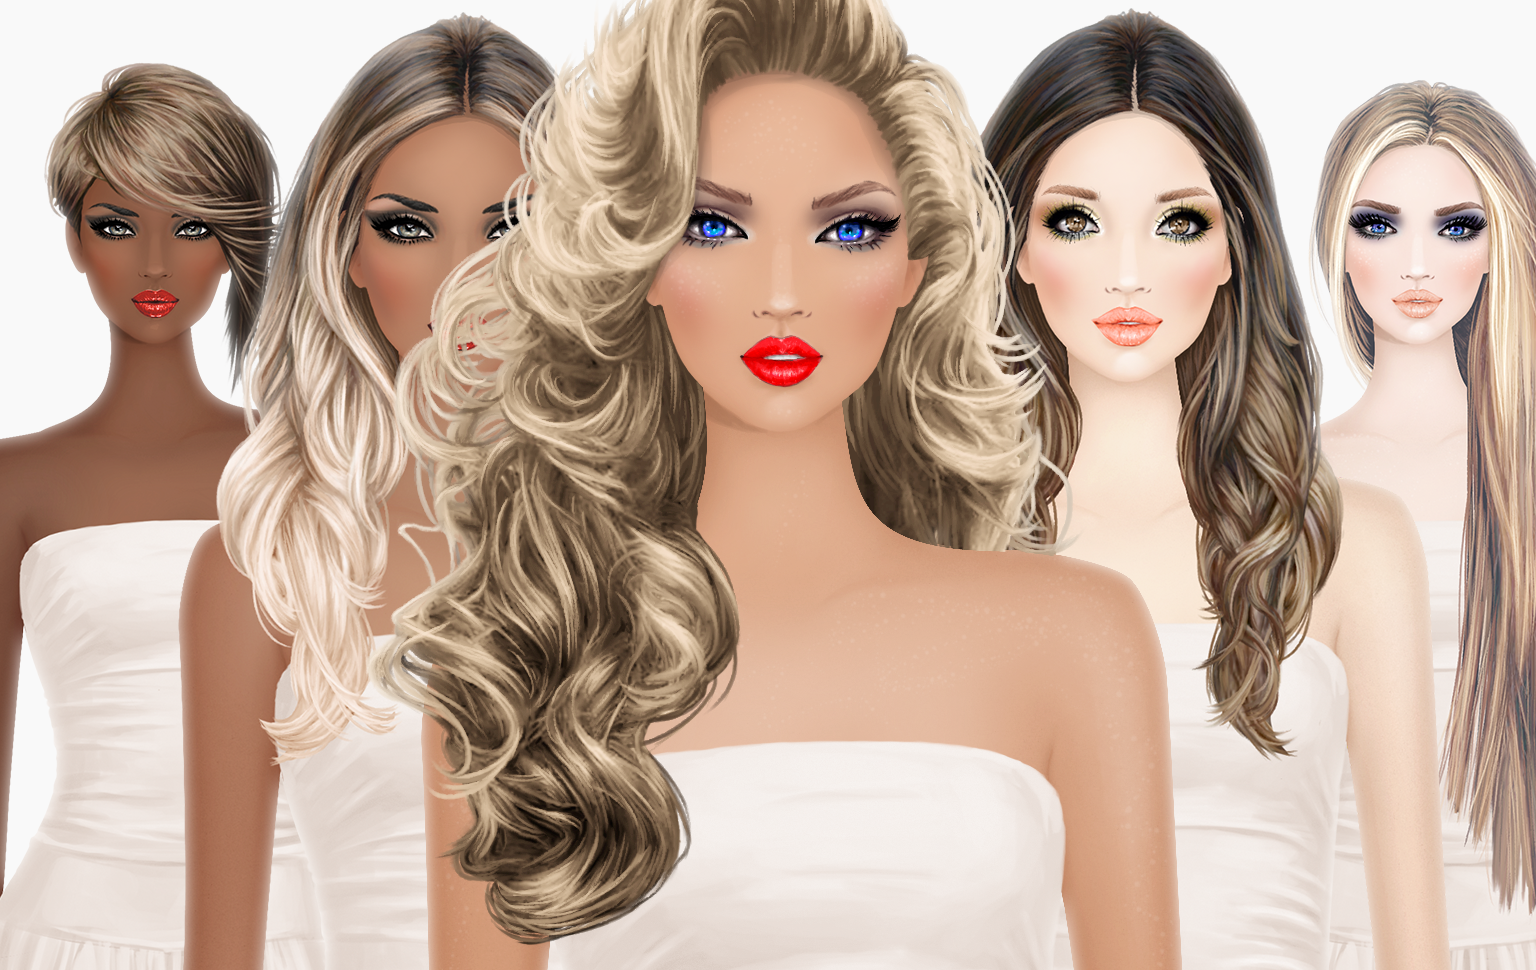 covet fashion on twitter   u0026quot we u0026 39 ve got gorgeous hair and makeup out today for the  2 3m closet